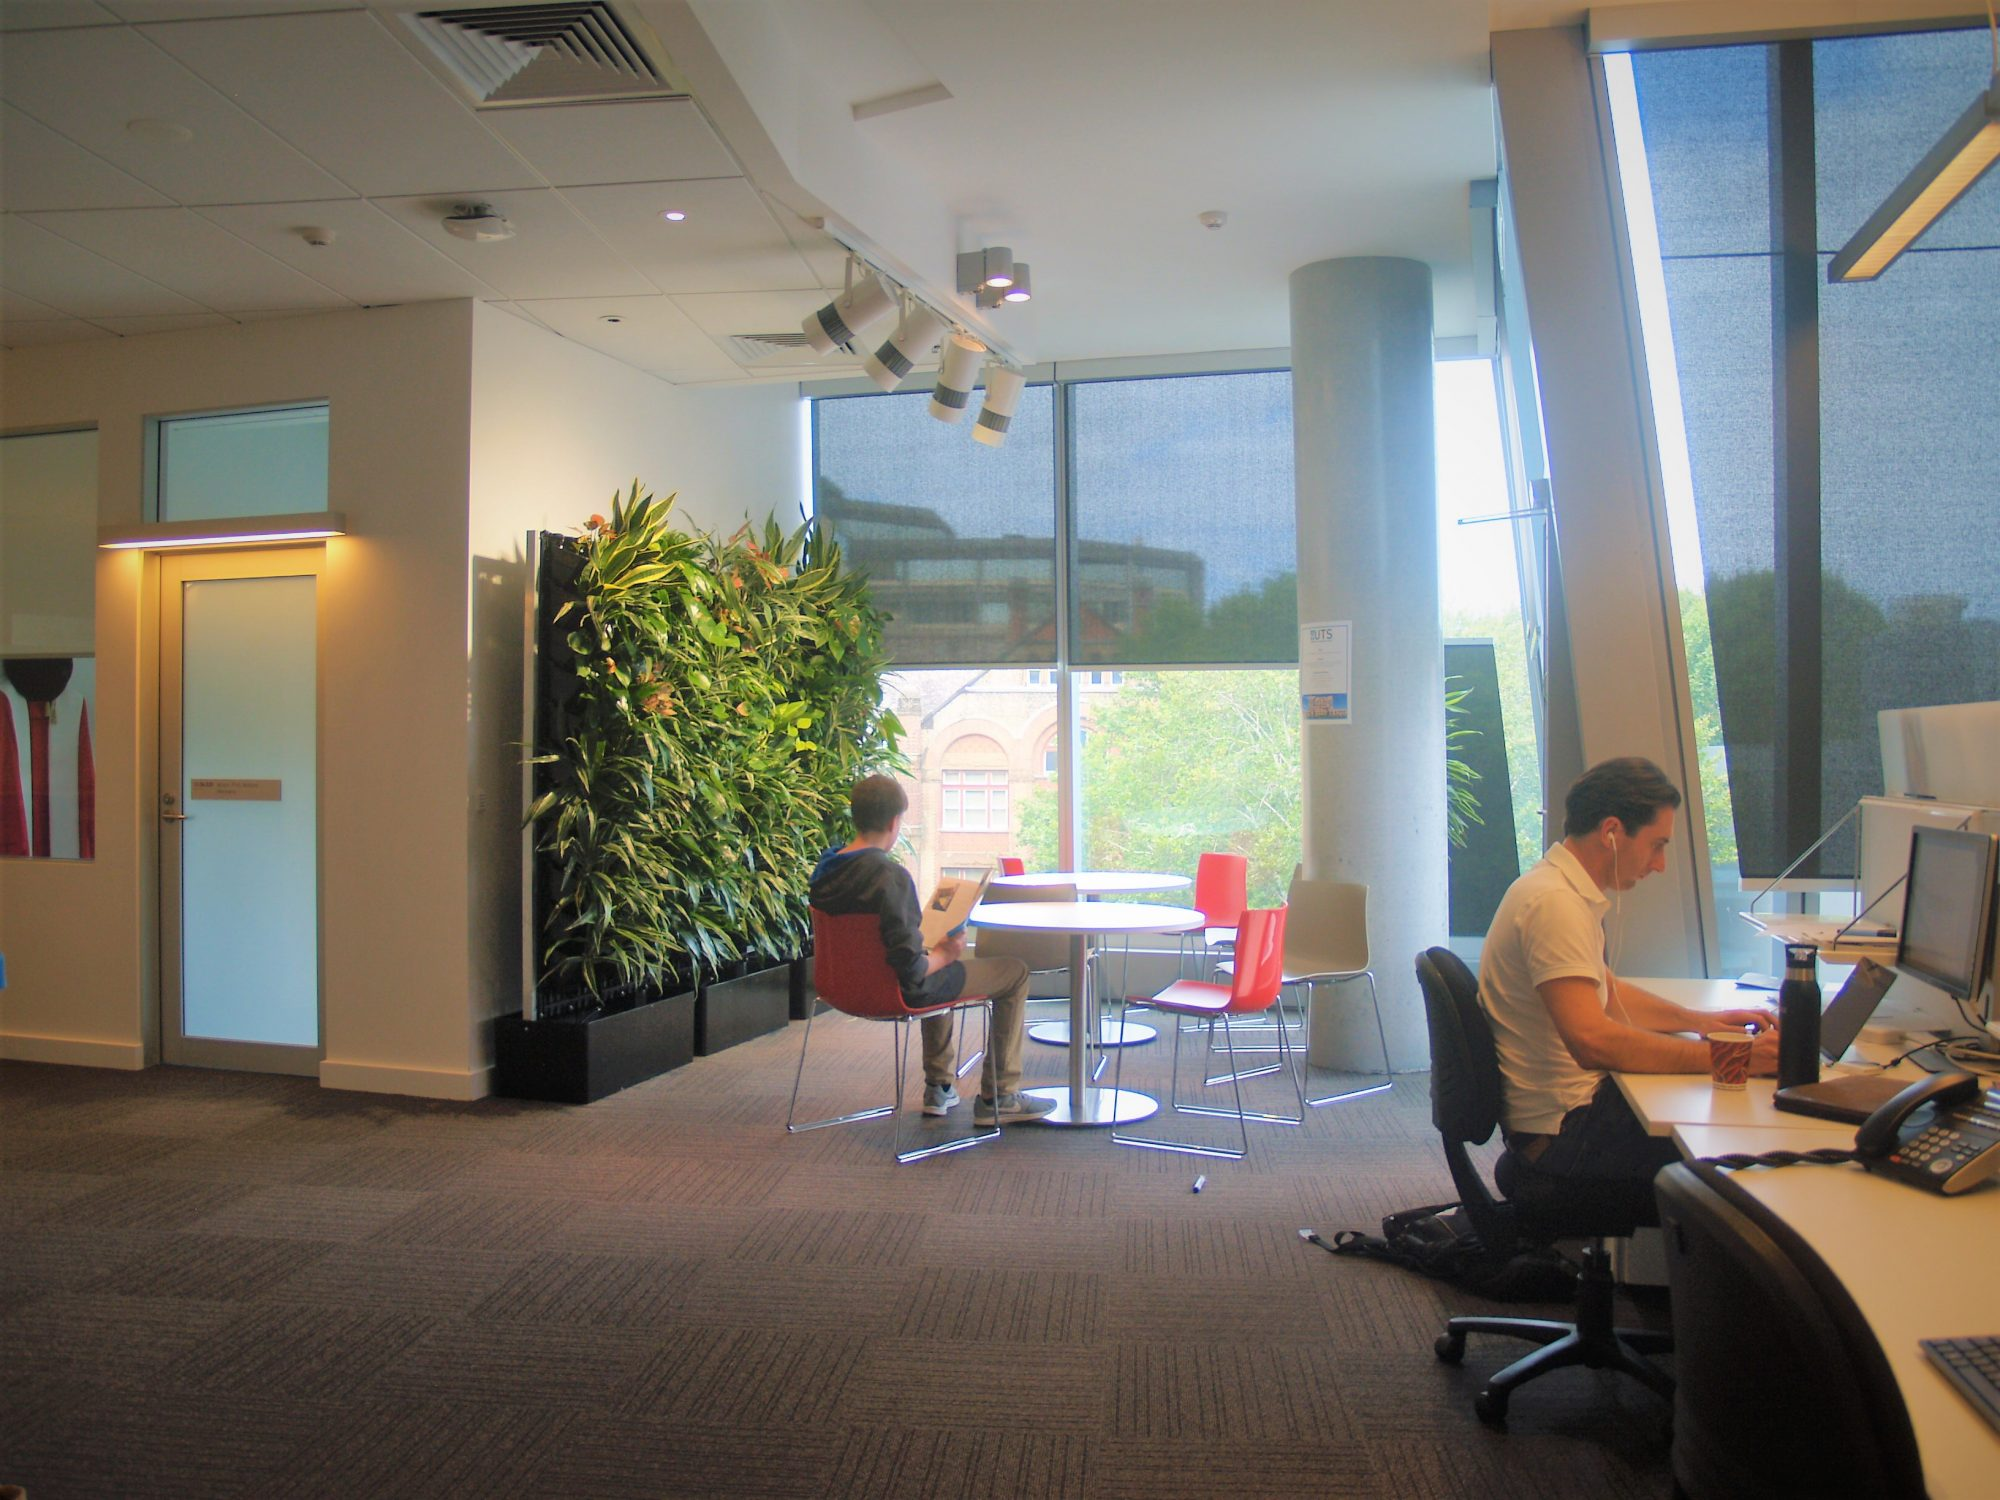 Green Walls, Vertical Gardens, Indoor Plant Hire, Office Plants